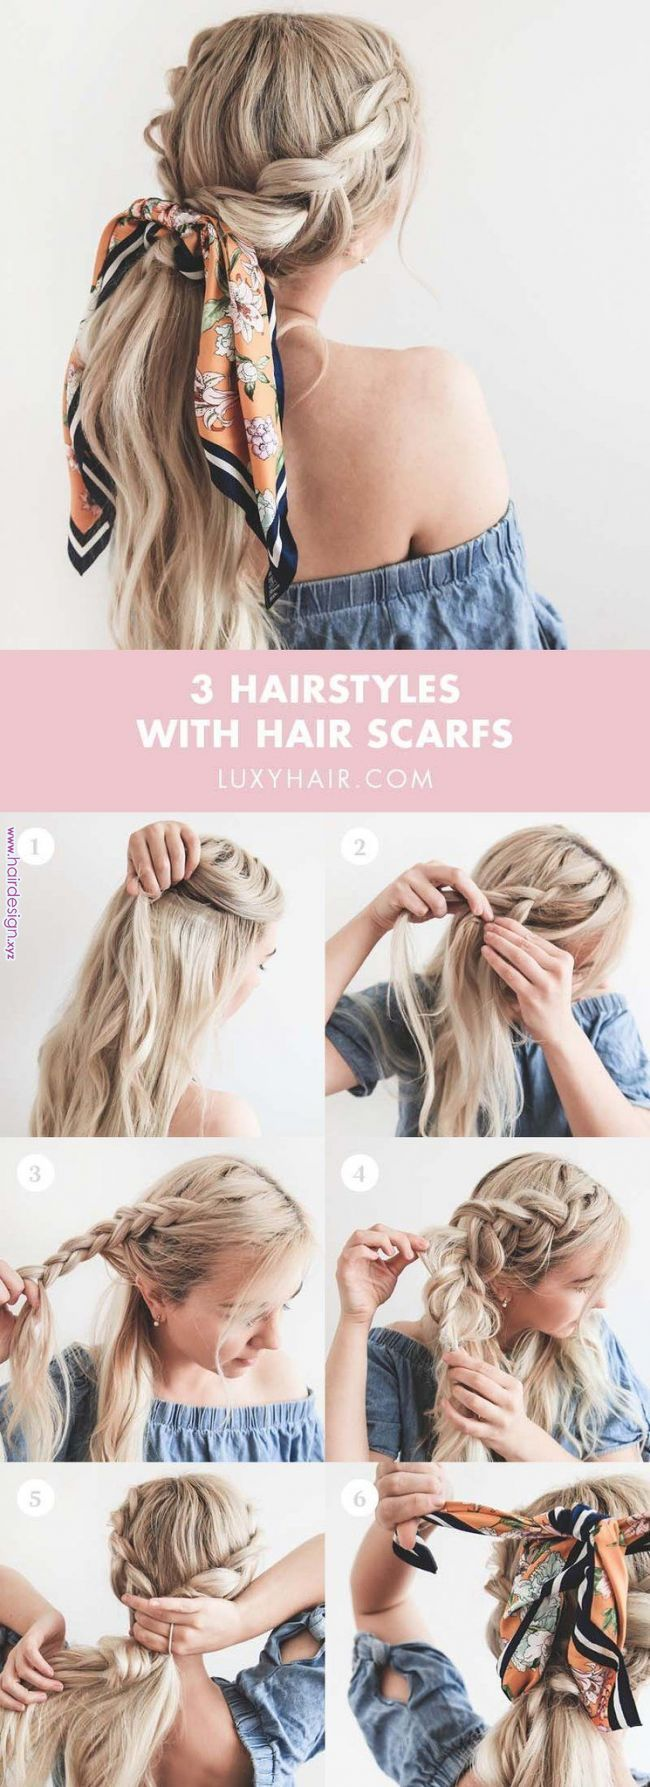 Summer Hairstyles With Headscarves Wearing A Headscarf Is A Great Way To Cover Any Greasy Sweaty Roots Or Inc Hair Styles Scarf Hairstyles Long Hair Styles